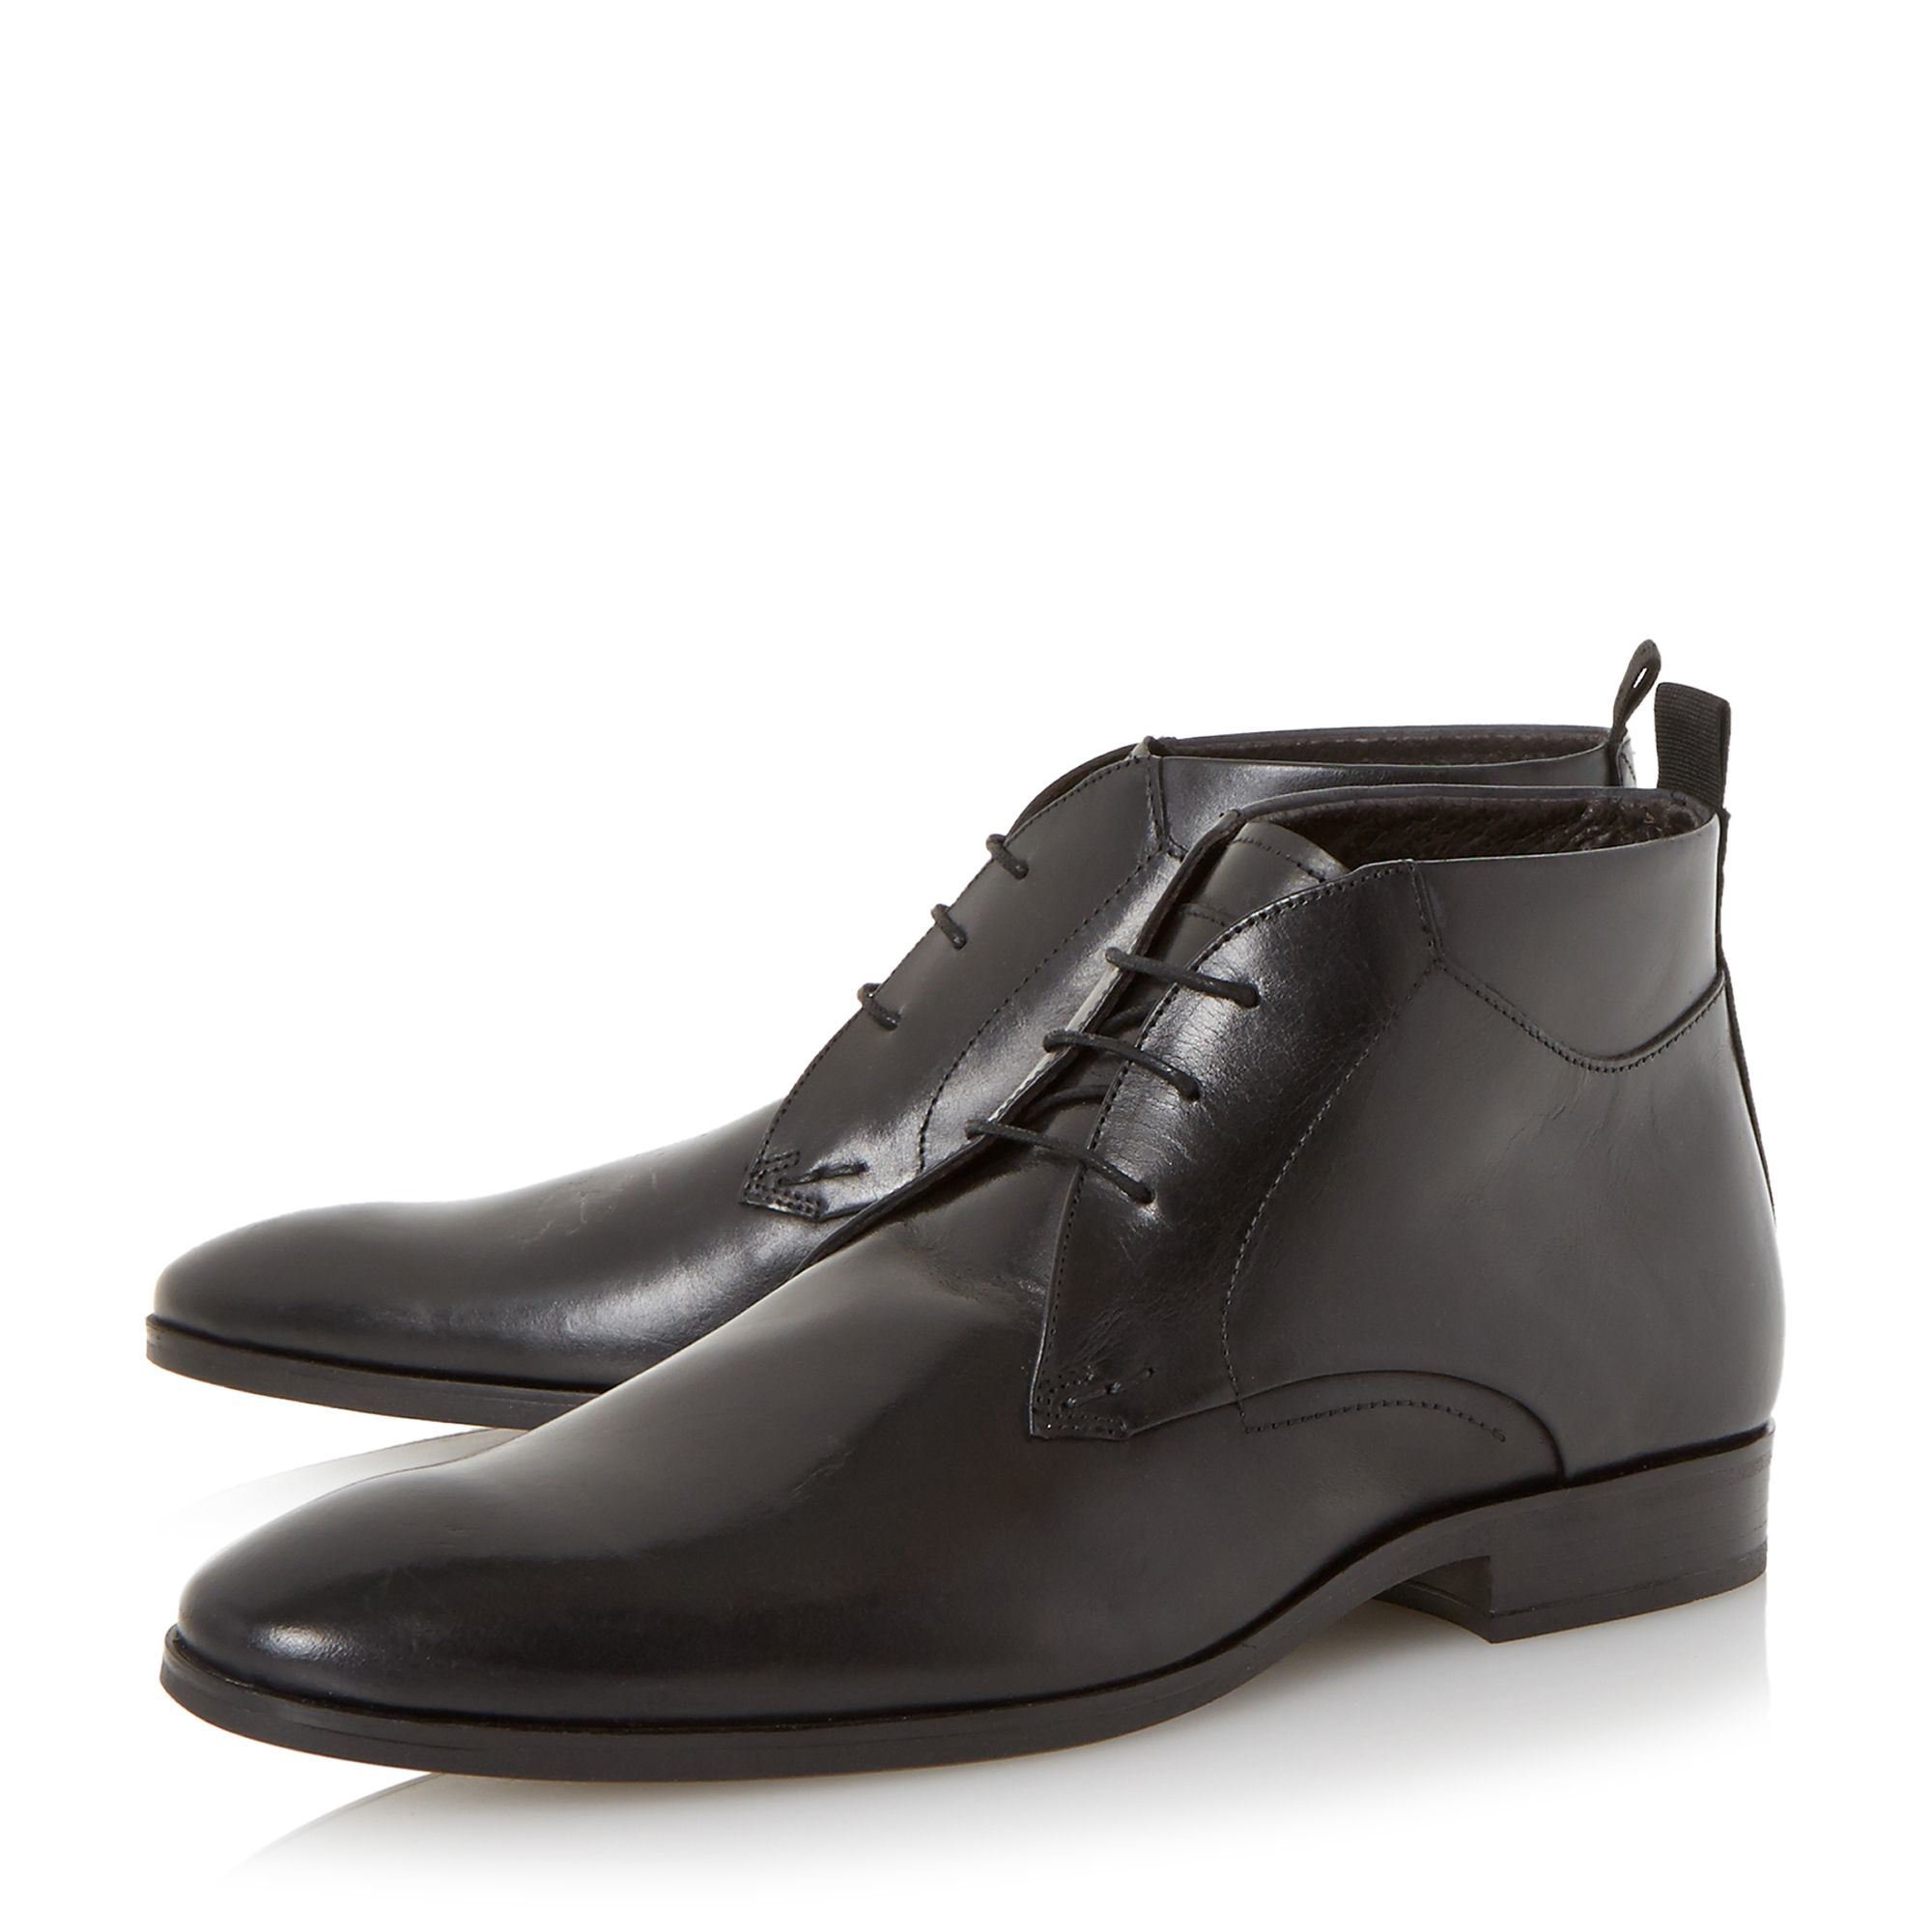 bertie mack leather chukka boots in black for lyst